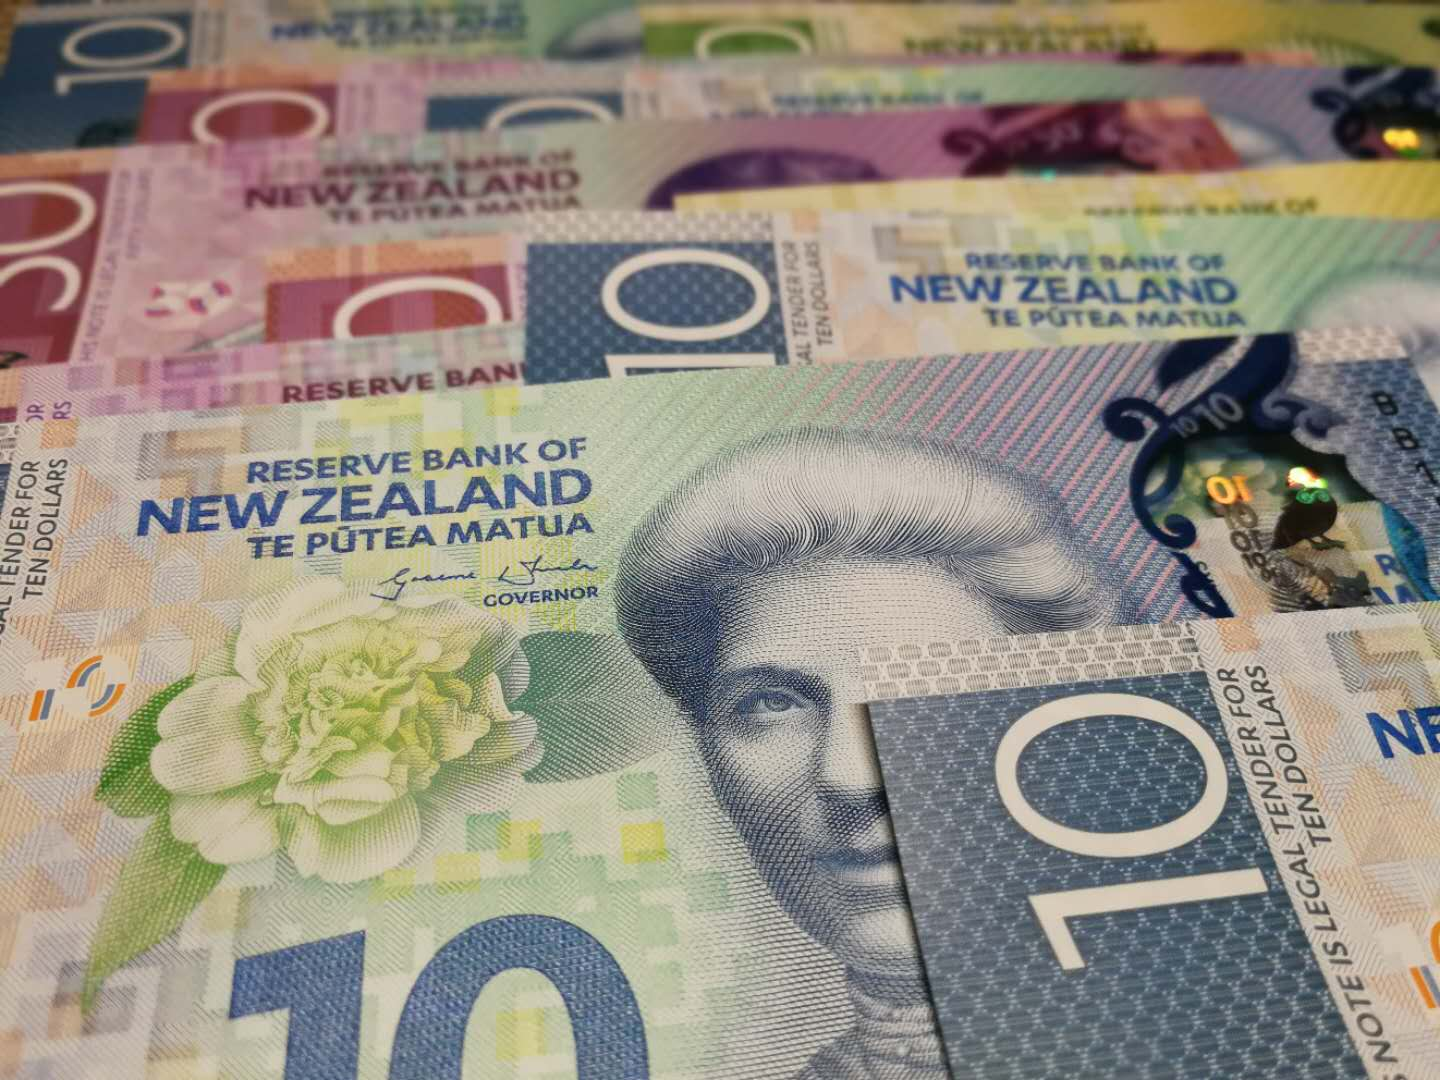 nzd-notes-laterally-arranged